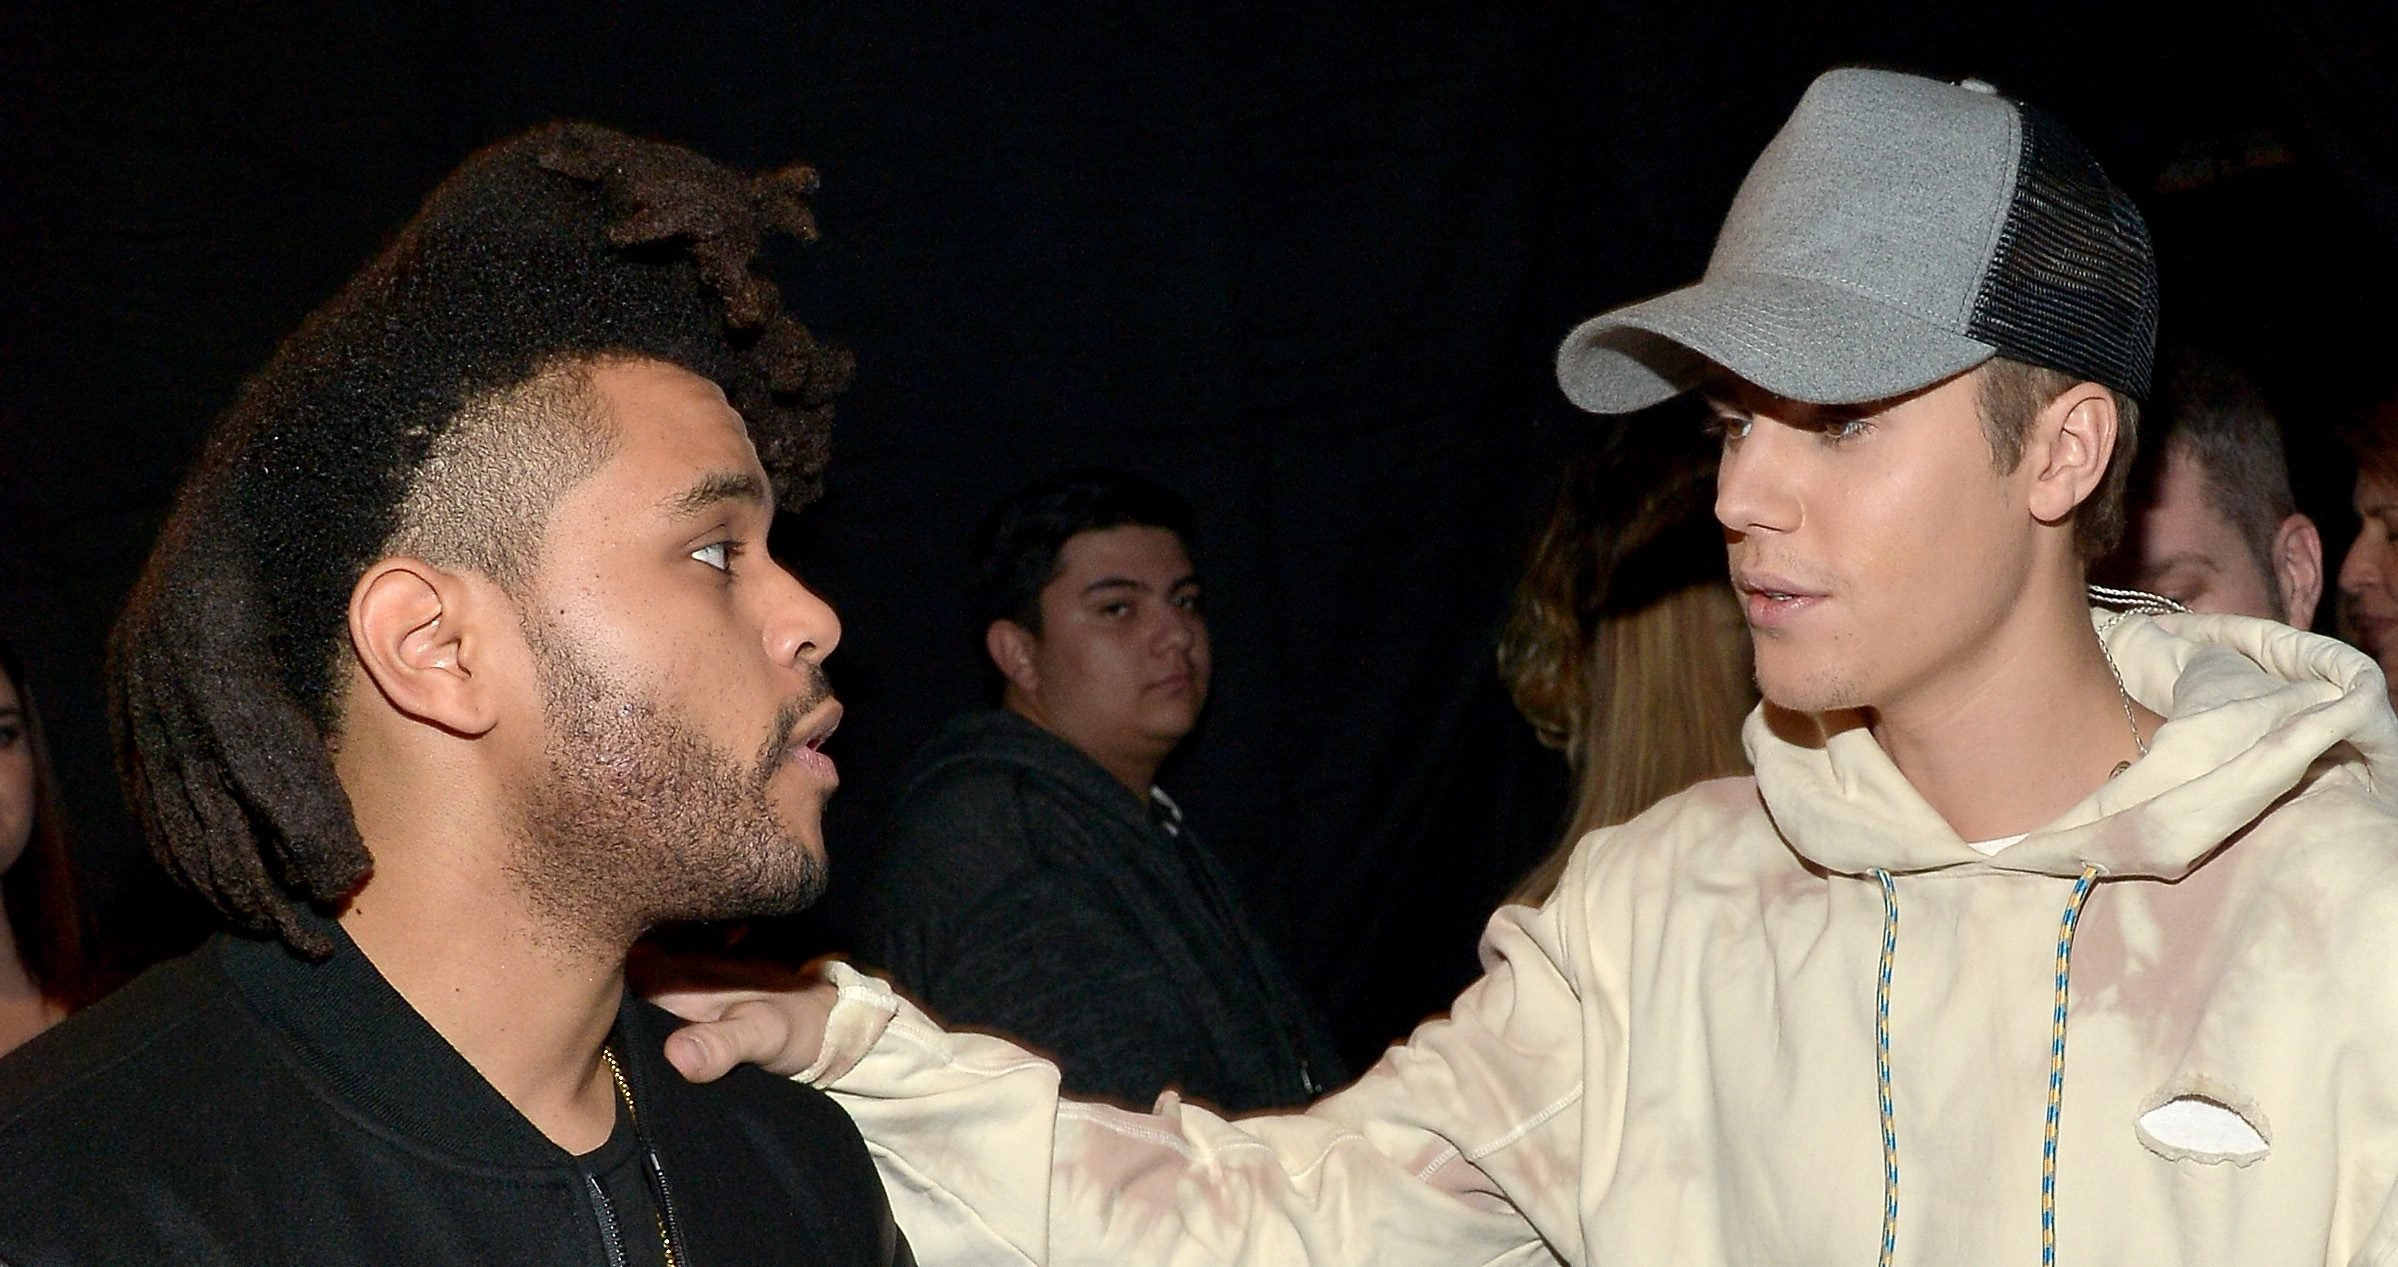 Justin Bieber, The Weeknd displeased with the Grammys — for different reasons - Global News